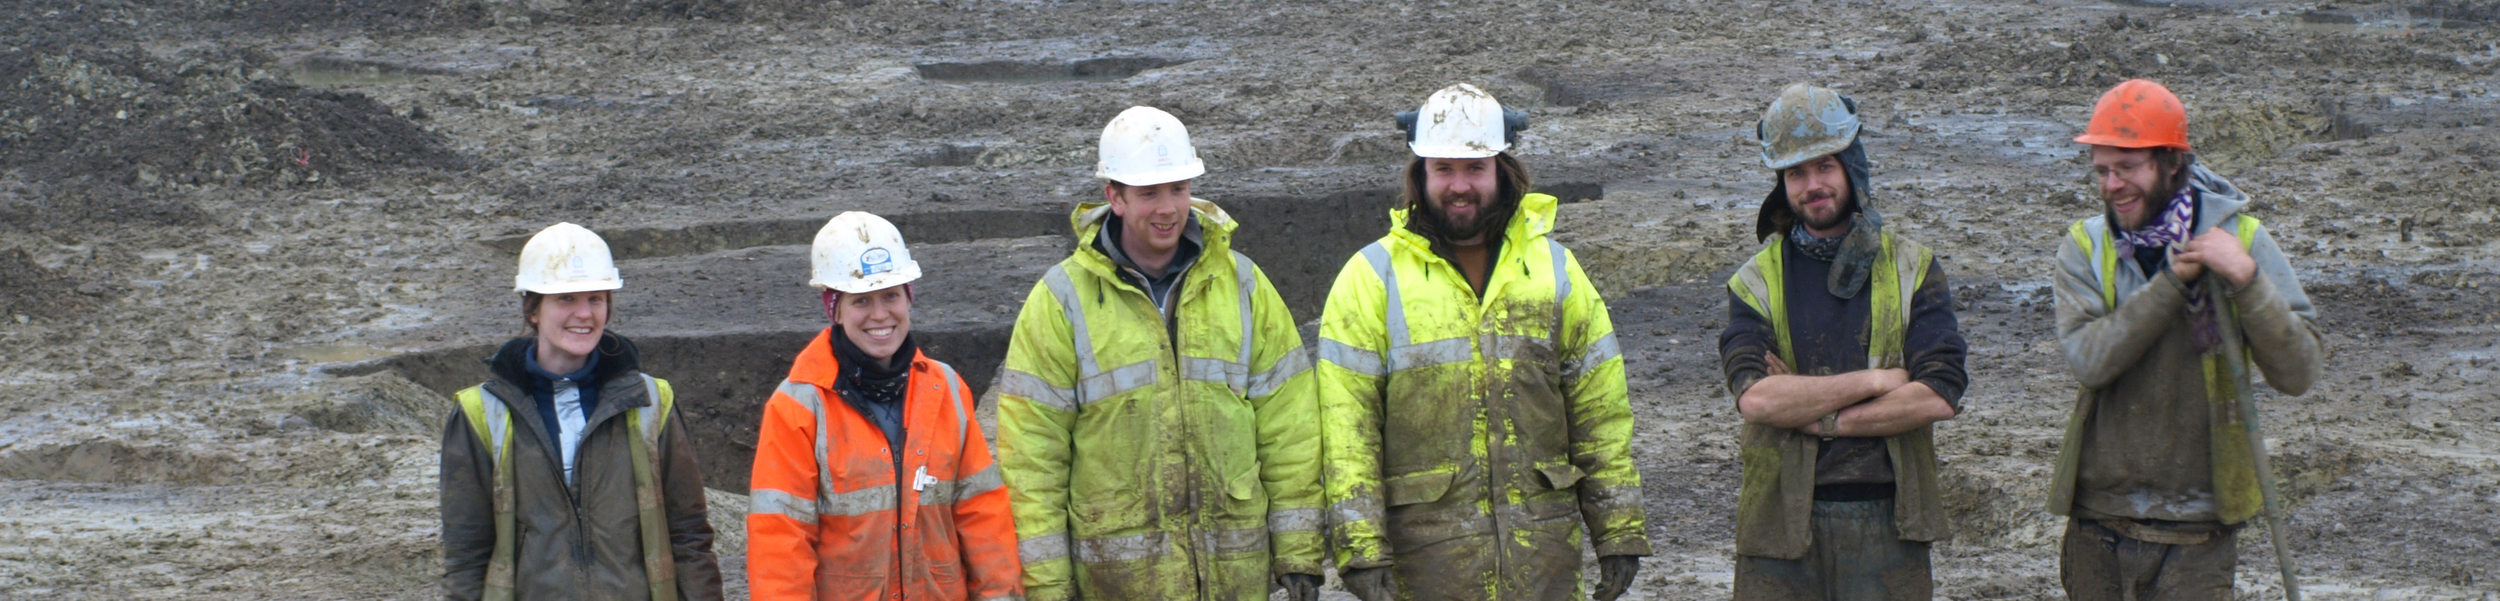 Meet the Albion Archaeology team. You'll see bios below of some our team members and what their specialist archaeology skills are.